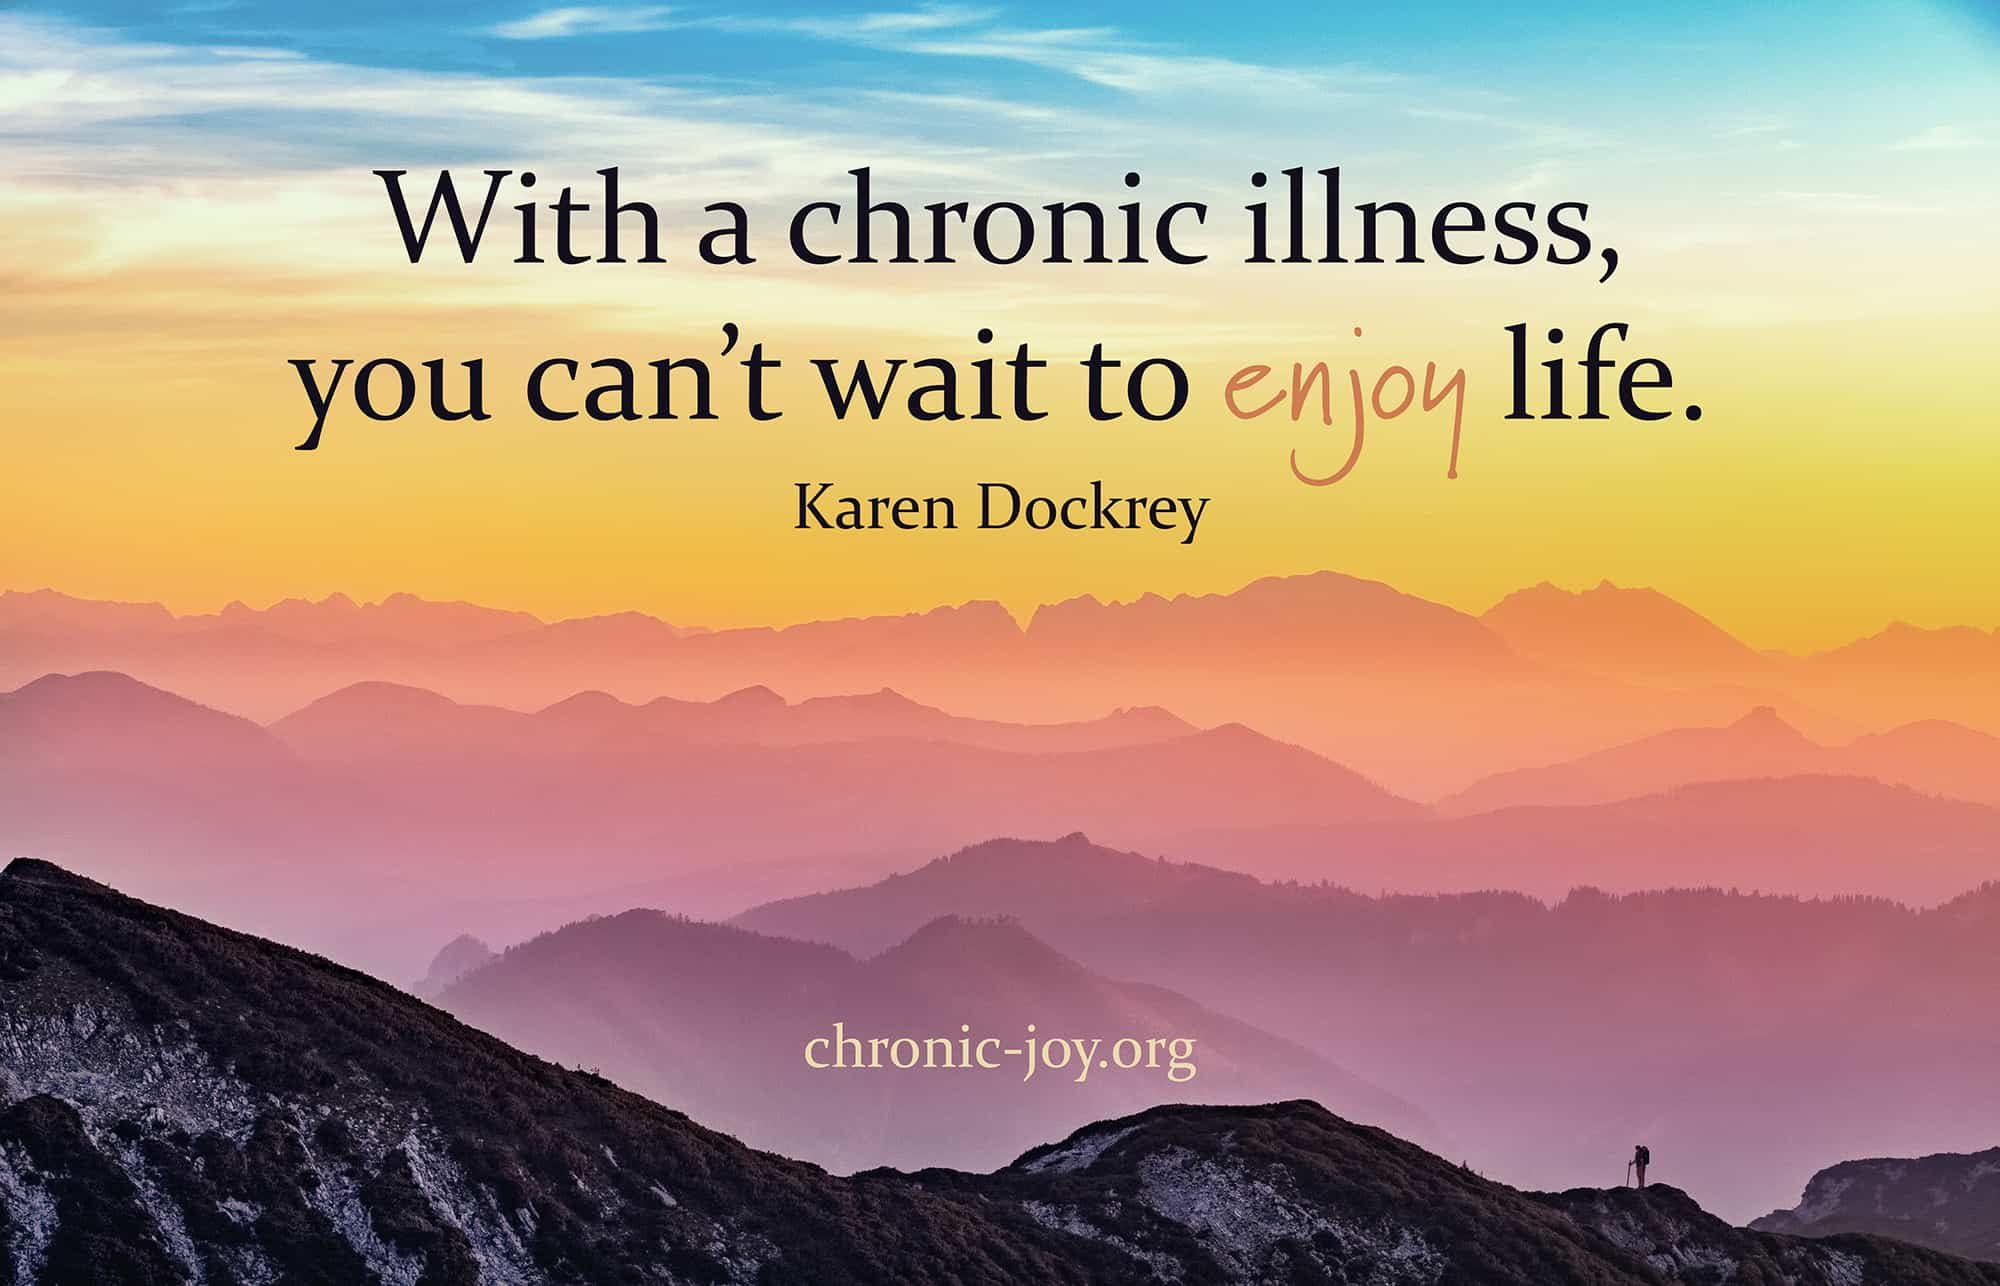 With a chronic illness, you can't wait to enjoy life.